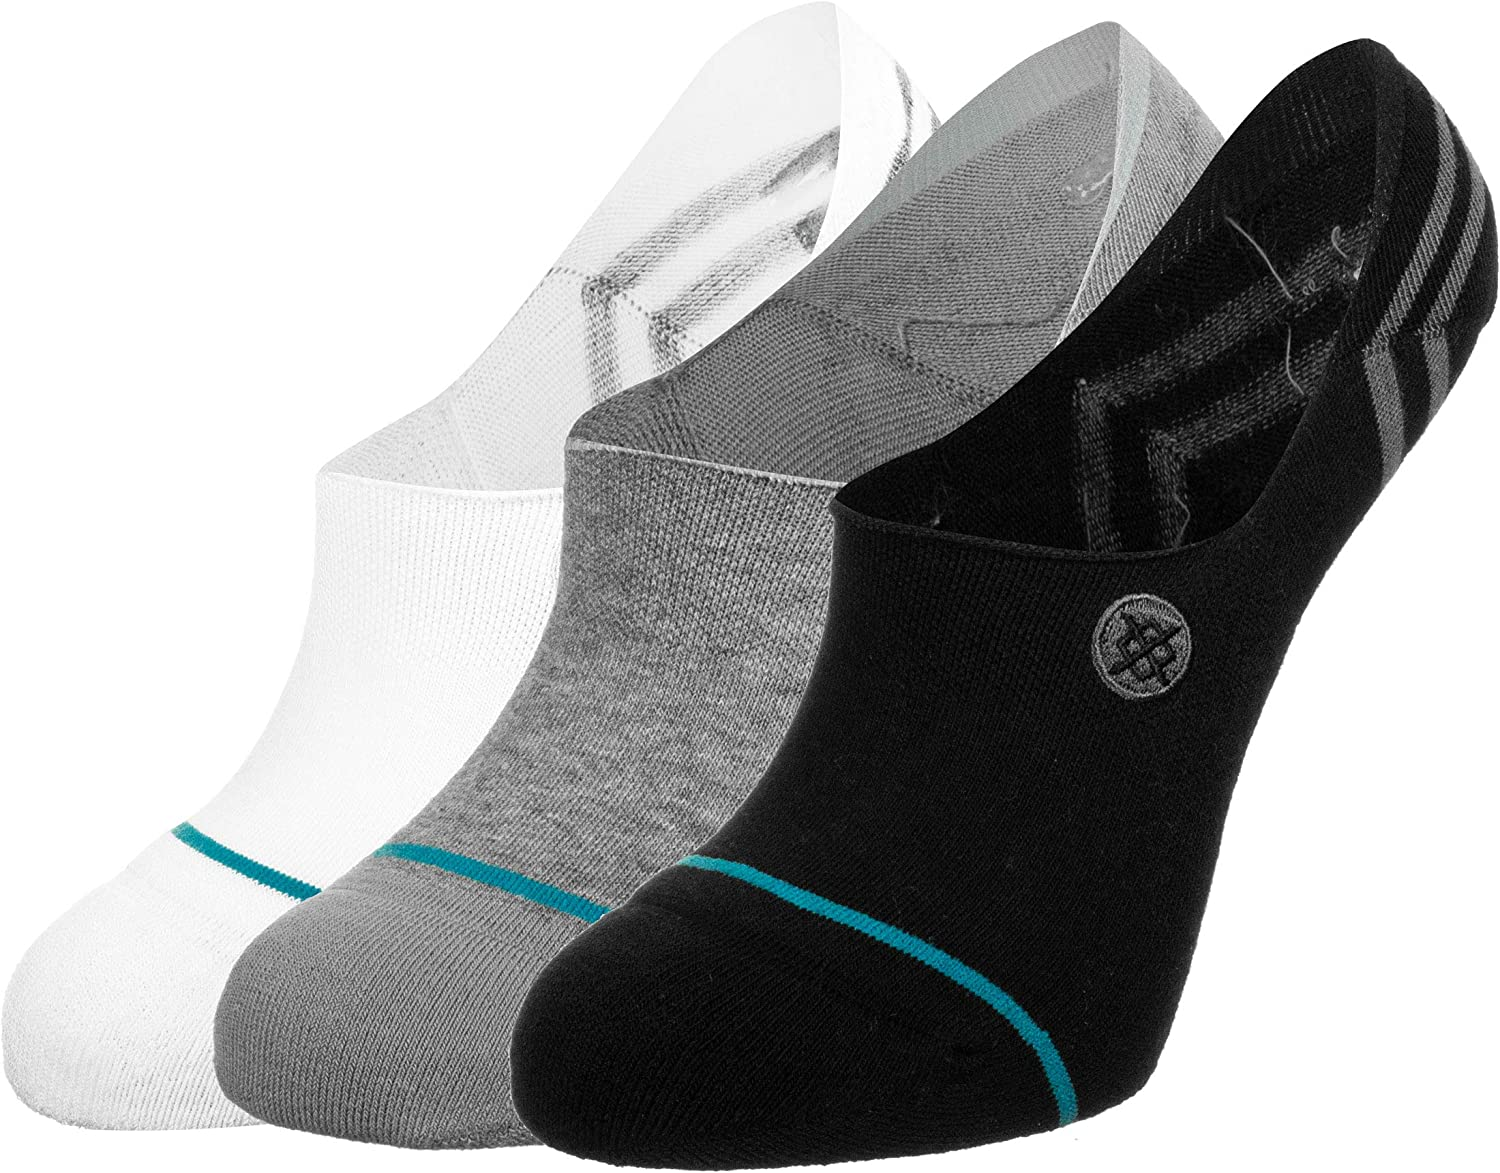 Stance Mens and Ladies Gamut 2 Cotton Socks Pack of 3 Multi